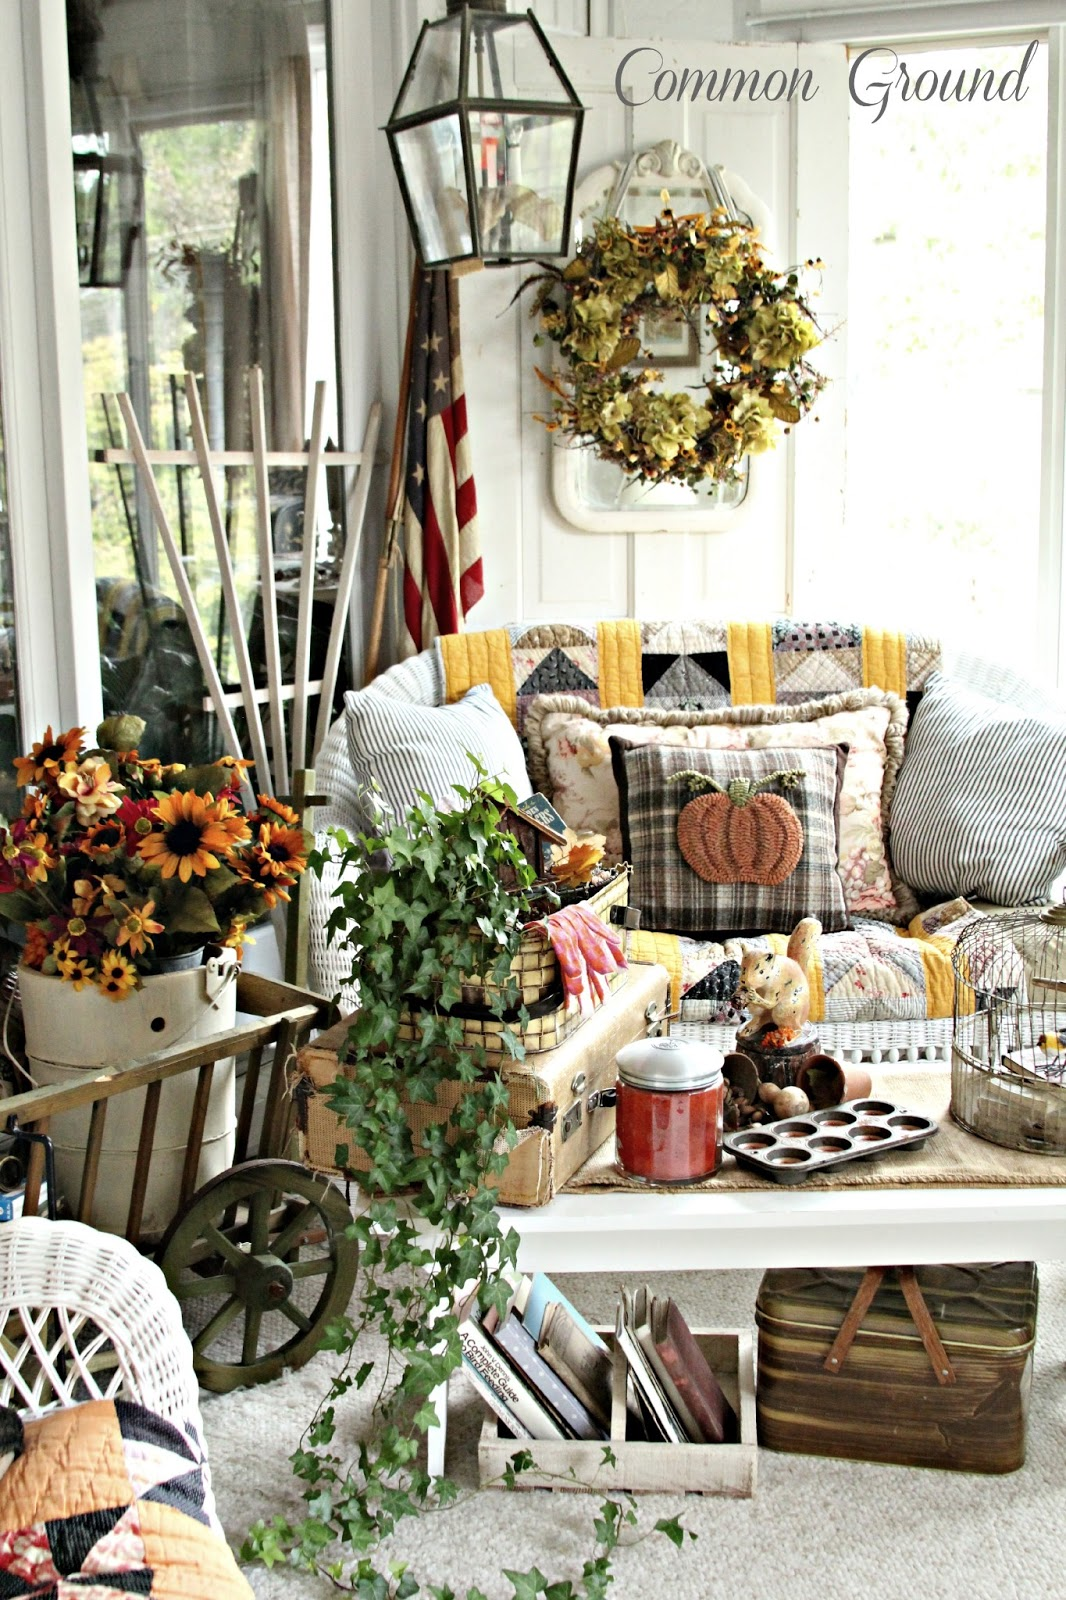 35 fabulous fall decor ideas the cottage market - Decorating For Autumn